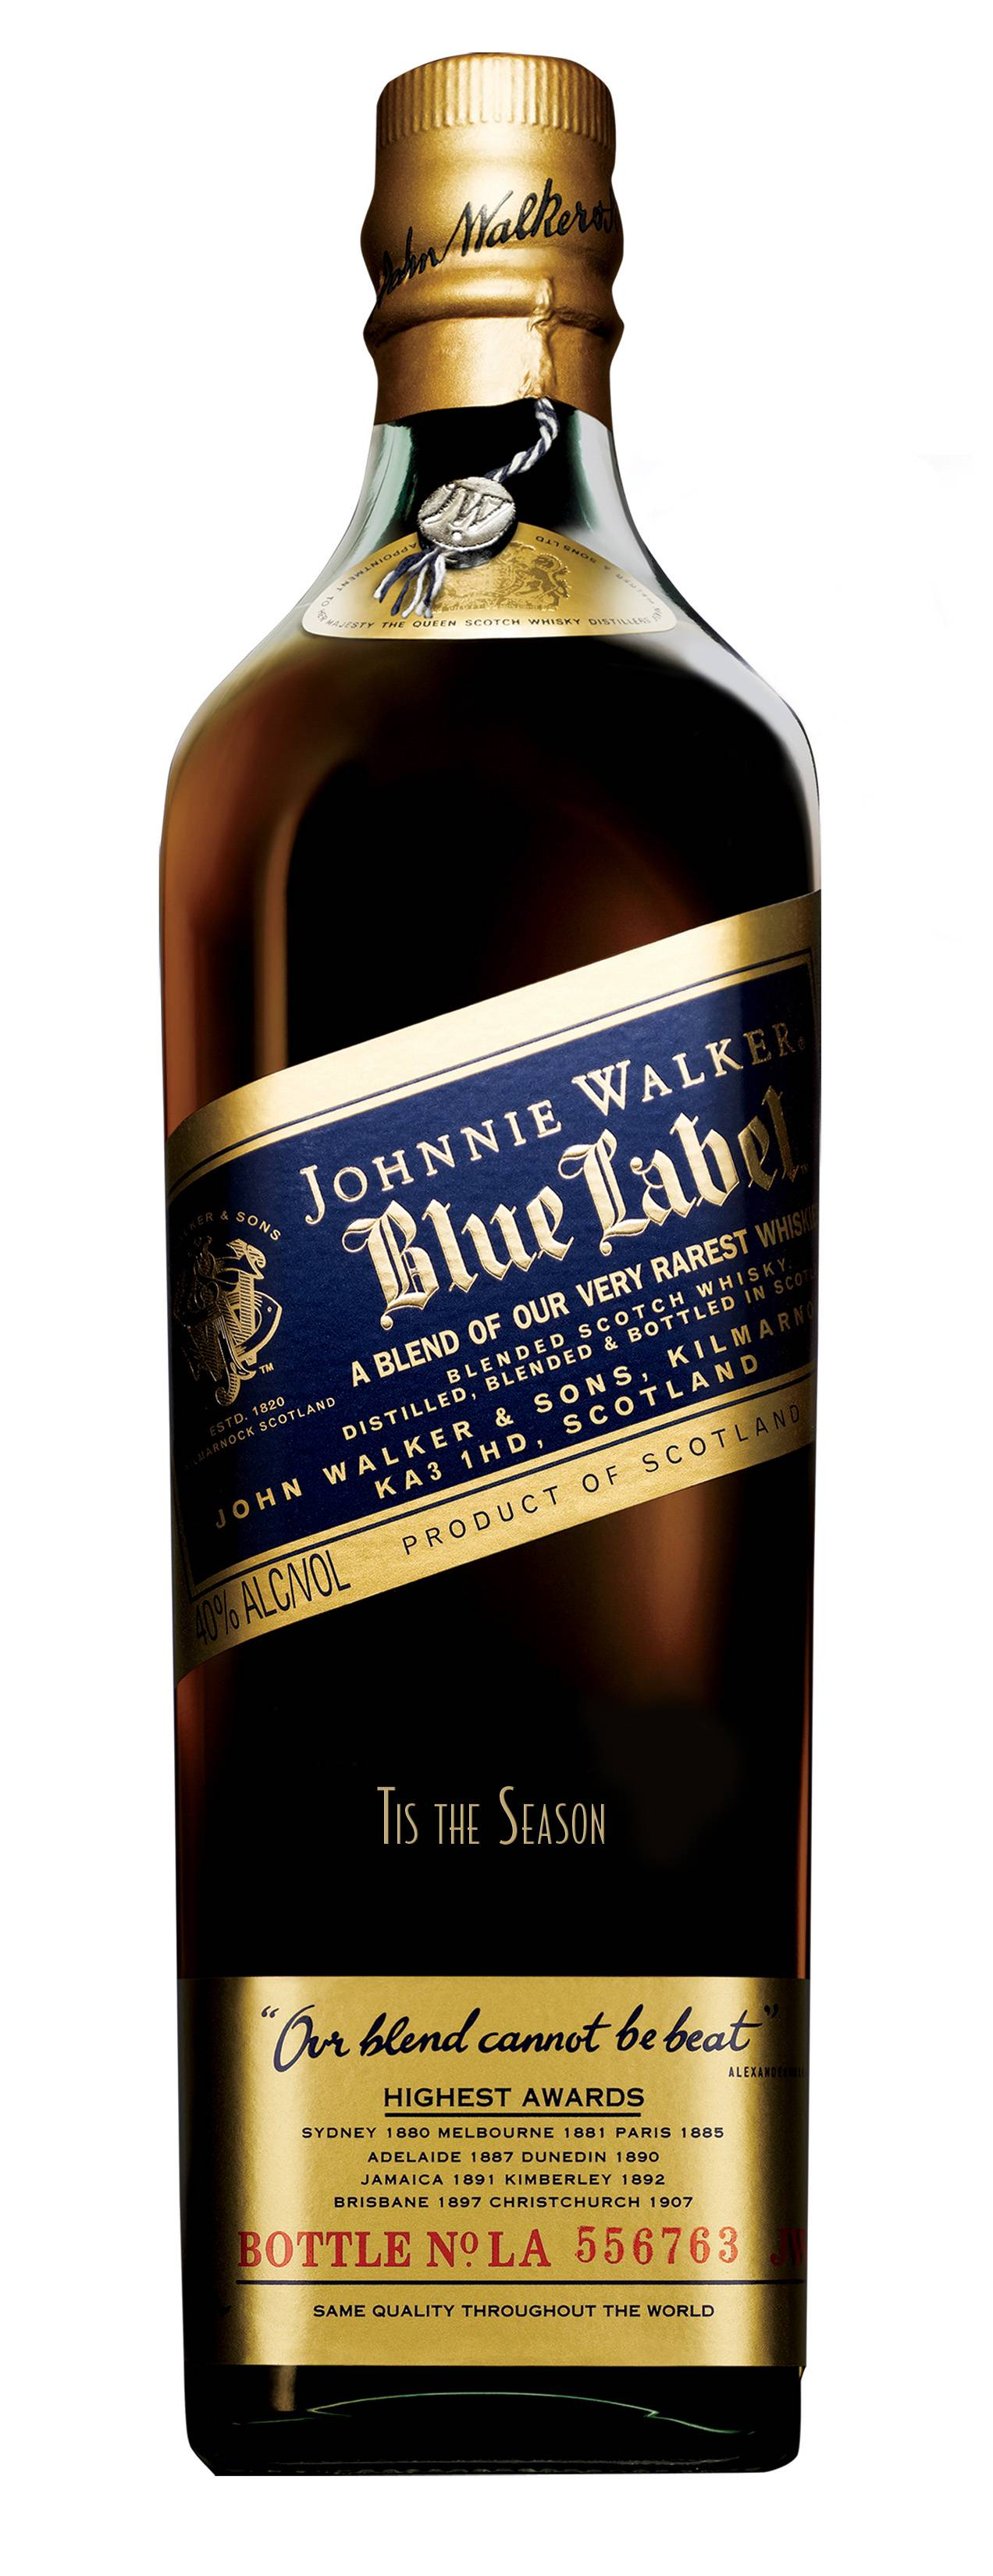 Haute Gift Guide: An Engraved Bottle of Johnnie Walker Blue Label